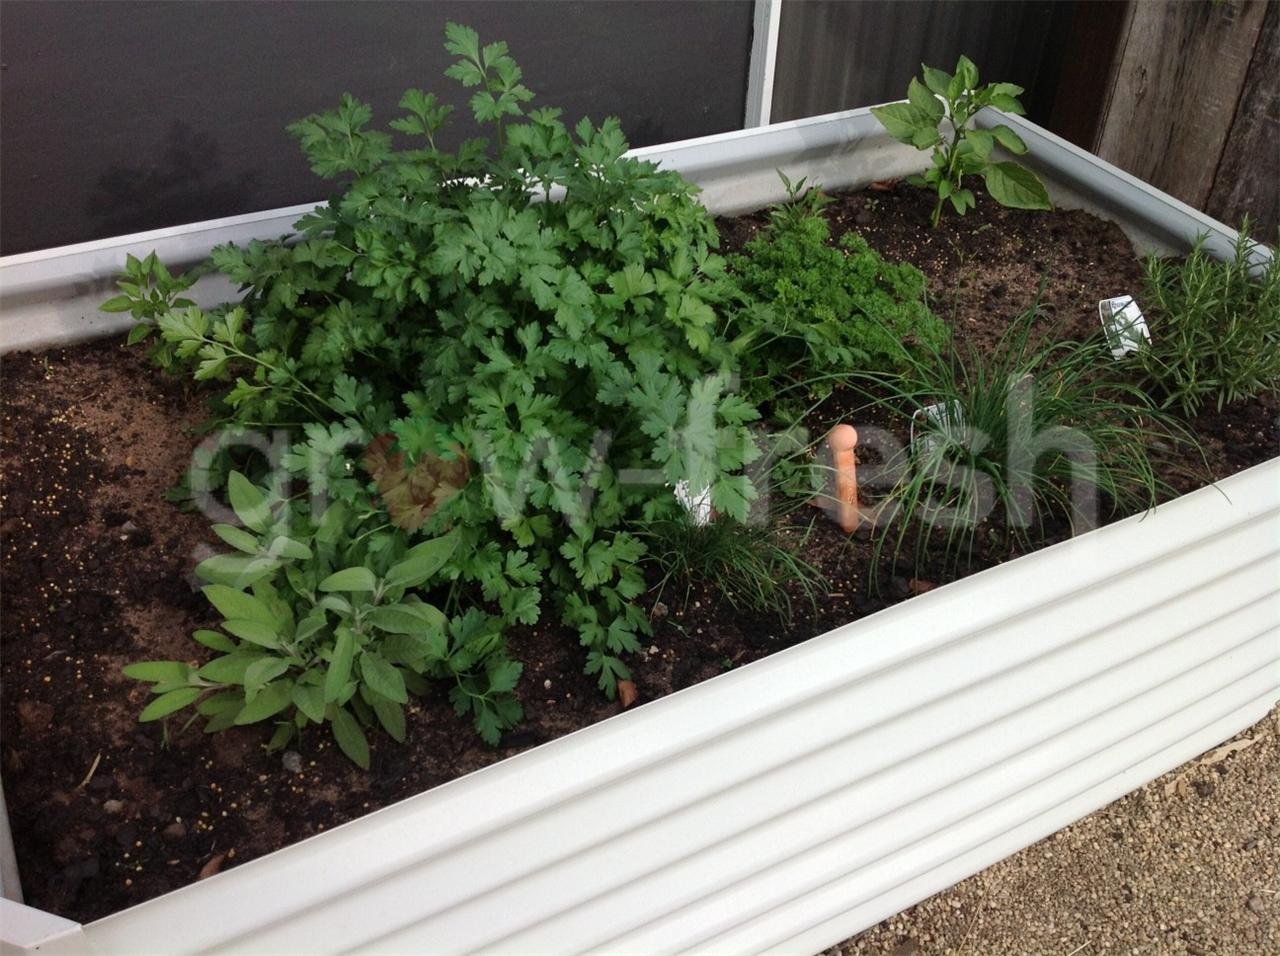 Colorbond Raised Garden Beds Stratco 2x Greenhouse Colorbond Diy Raised Planter Box Garden Bed